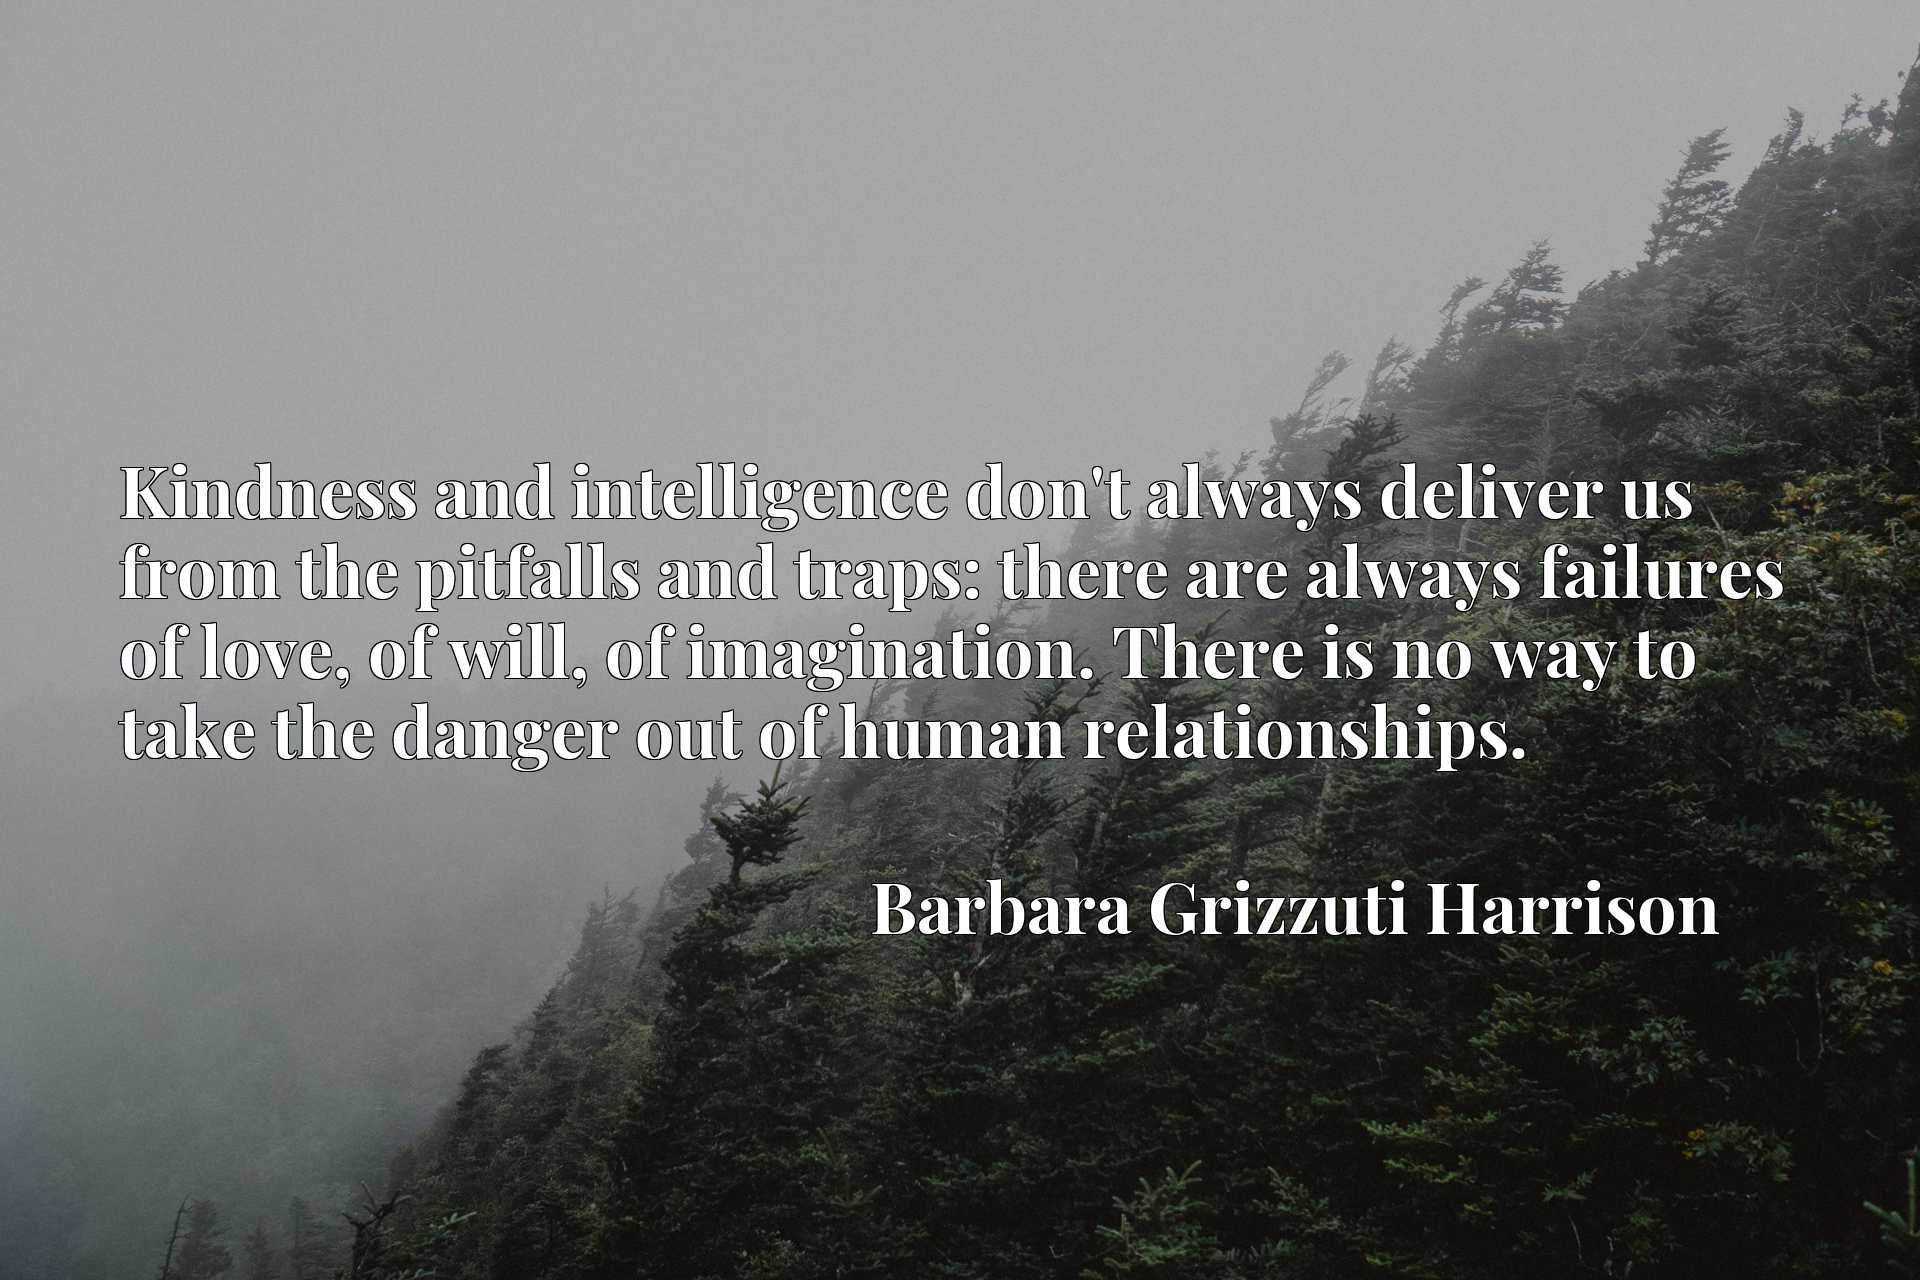 Quote Picture :Kindness and intelligence don't always deliver us from the pitfalls and traps: there are always failures of love, of will, of imagination. There is no way to take the danger out of human relationships.